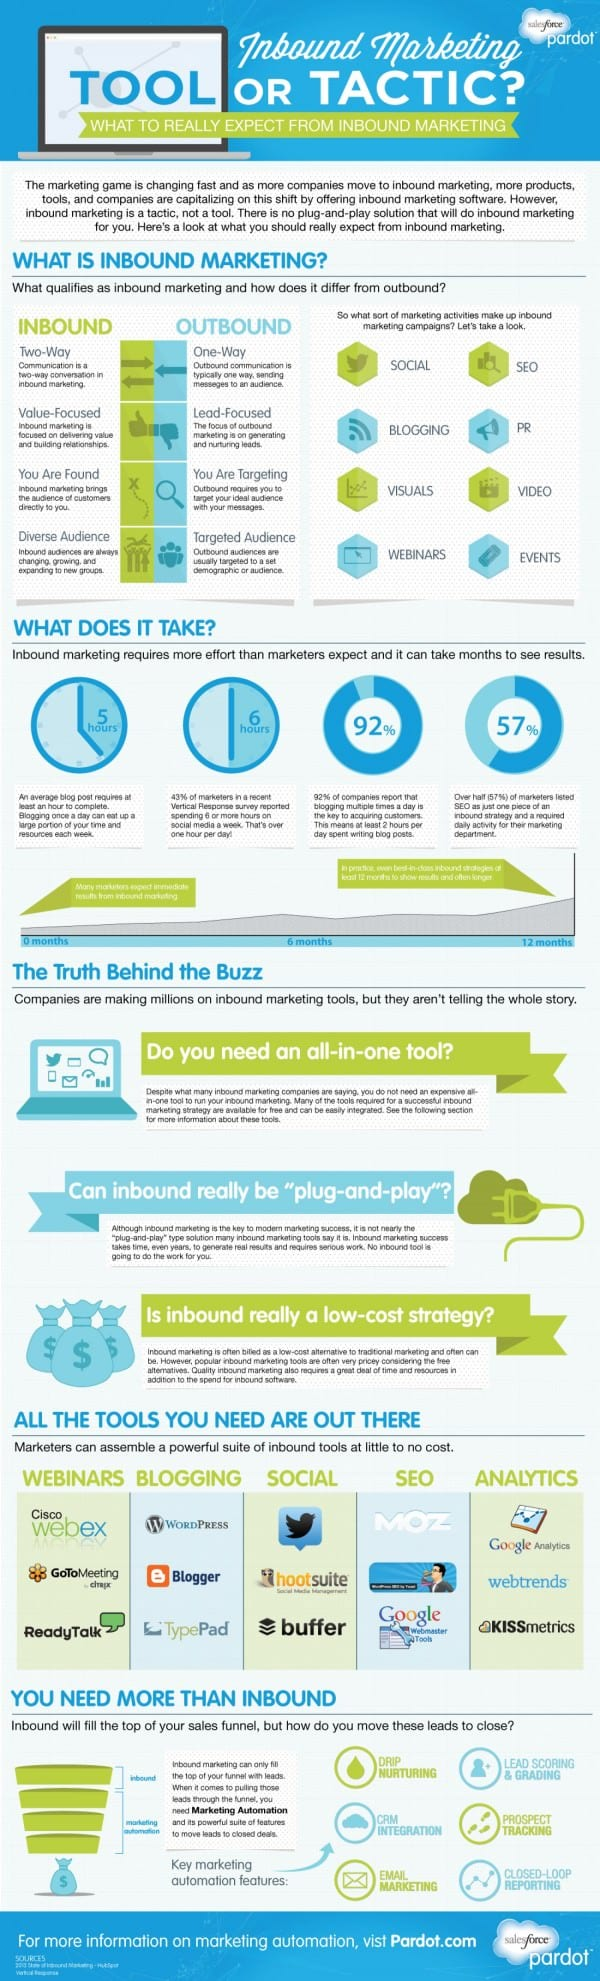 inbound-marketing-tool-or-tactic_Infographic